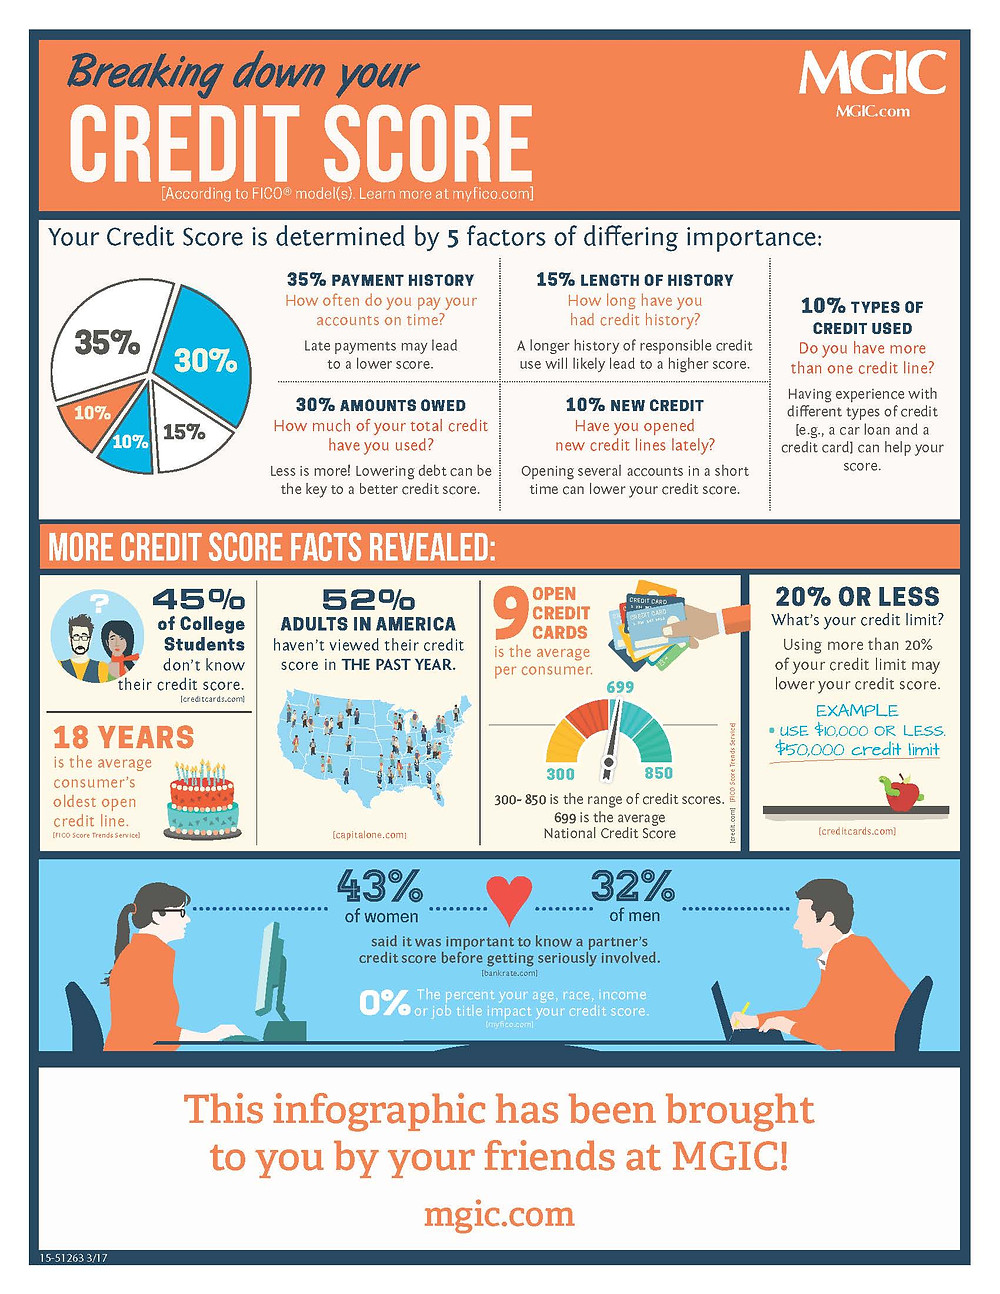 Breaking down your credit score graphic